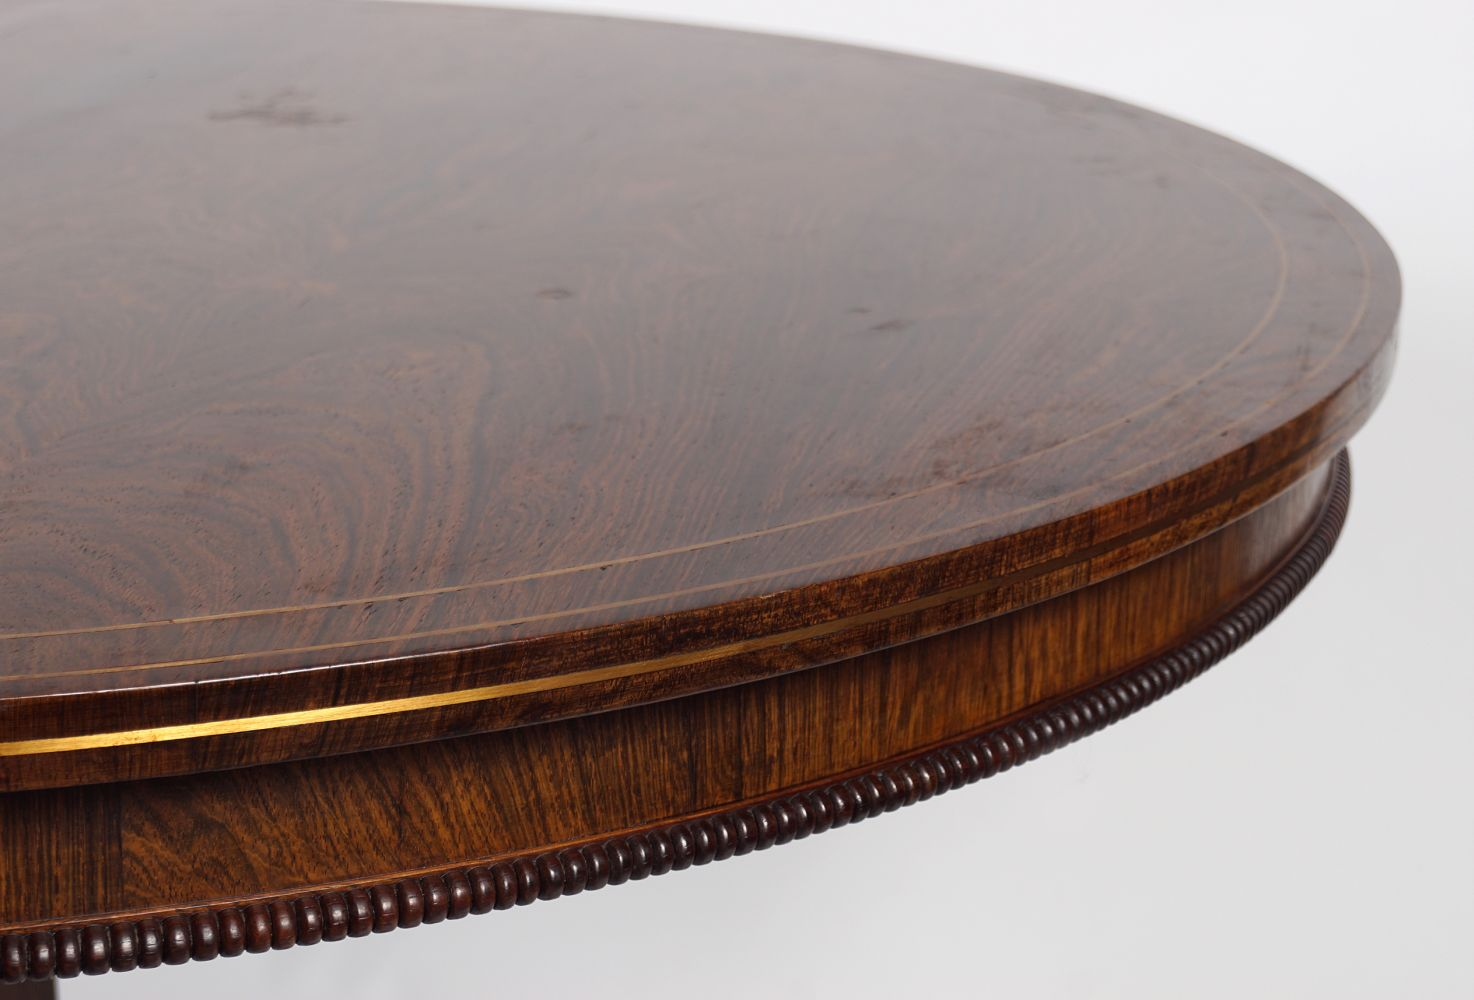 REGENCY ROSEWOOD AND BRASS INLAID CENTRE TABLE - Image 4 of 4